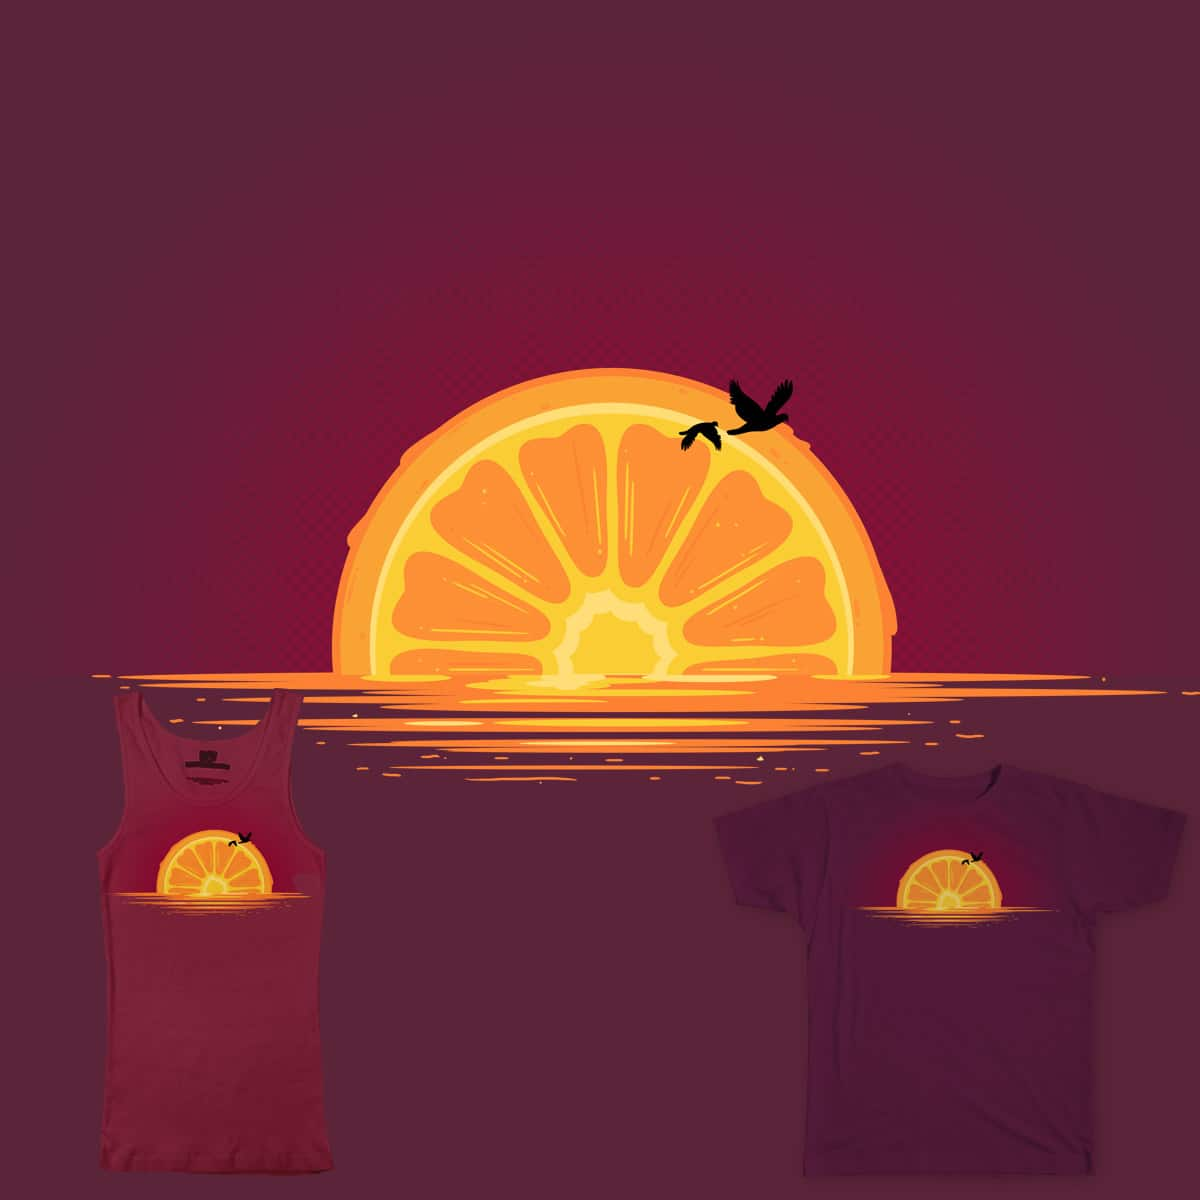 orangeset by Sketched4Fun on Threadless